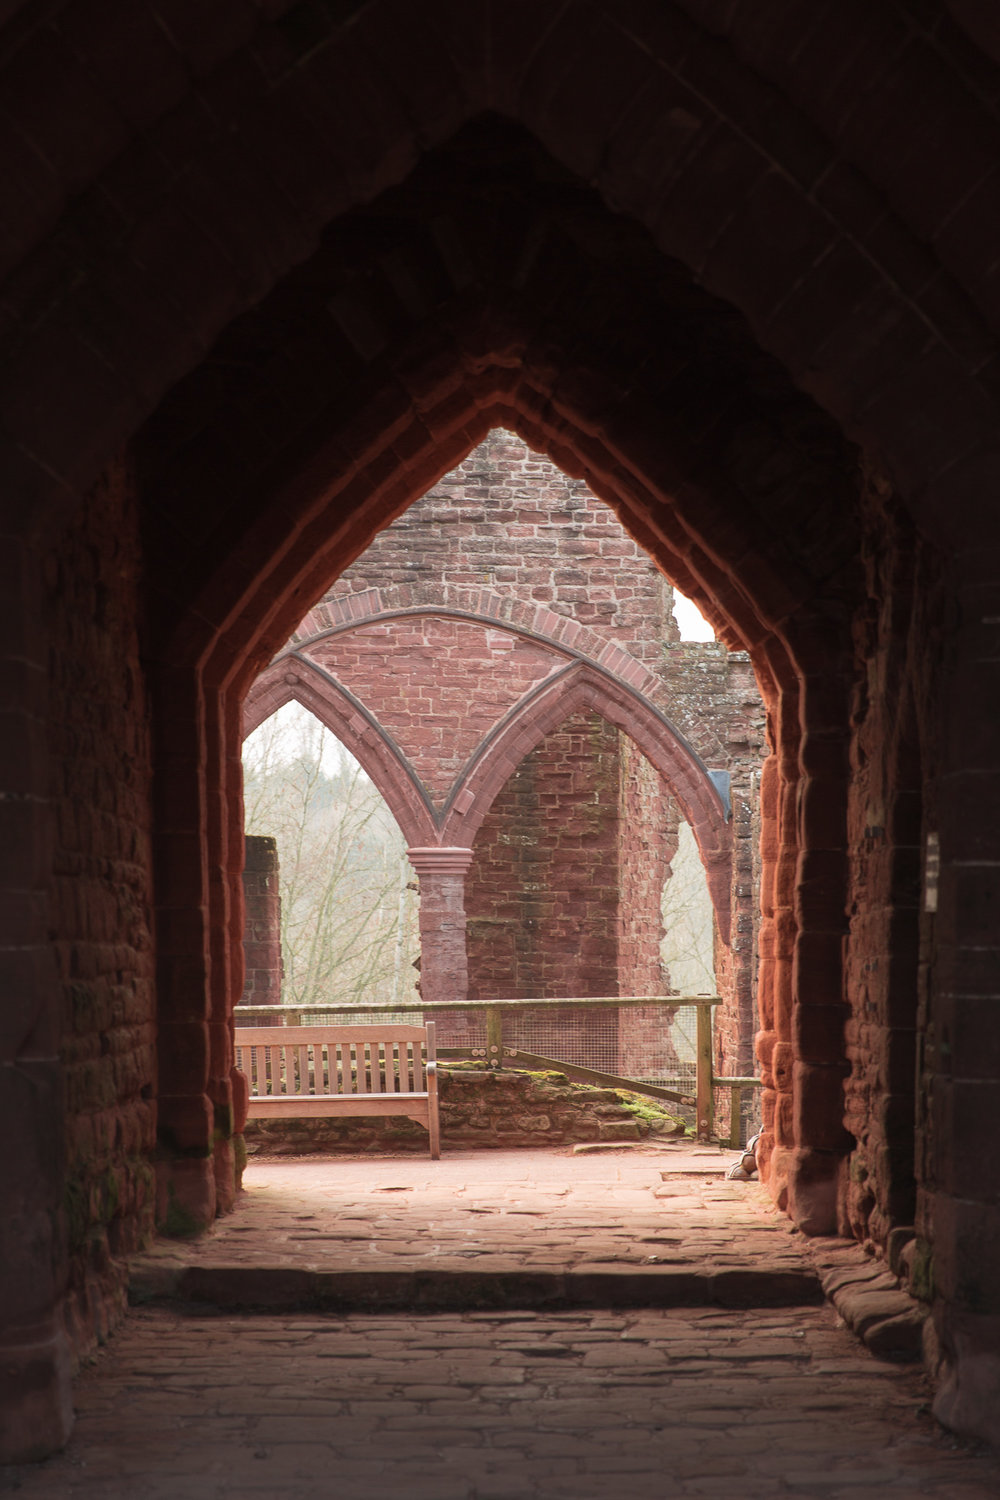 Hopefully your new home is in better condition than this! To be fair, Goodrich Castle hasn't been inhabited for centuries.